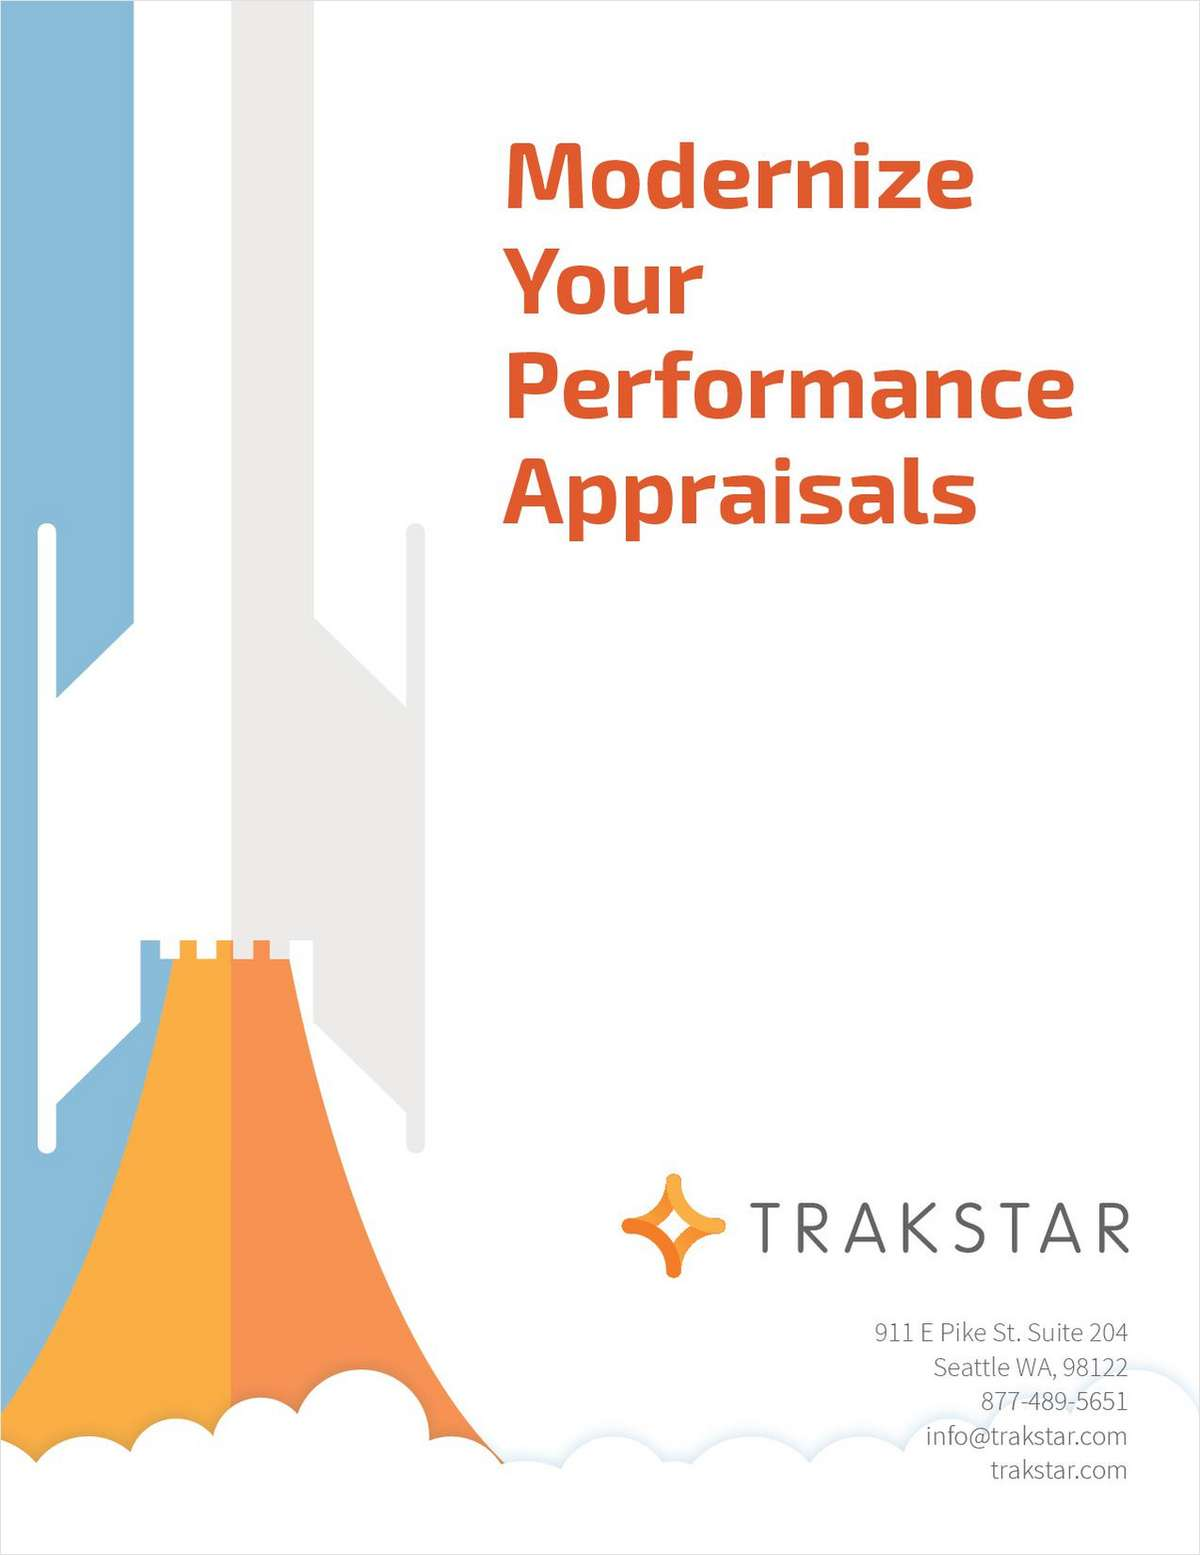 Dust Off The Performance Appraisal; How to Modernize and Make Them Shine